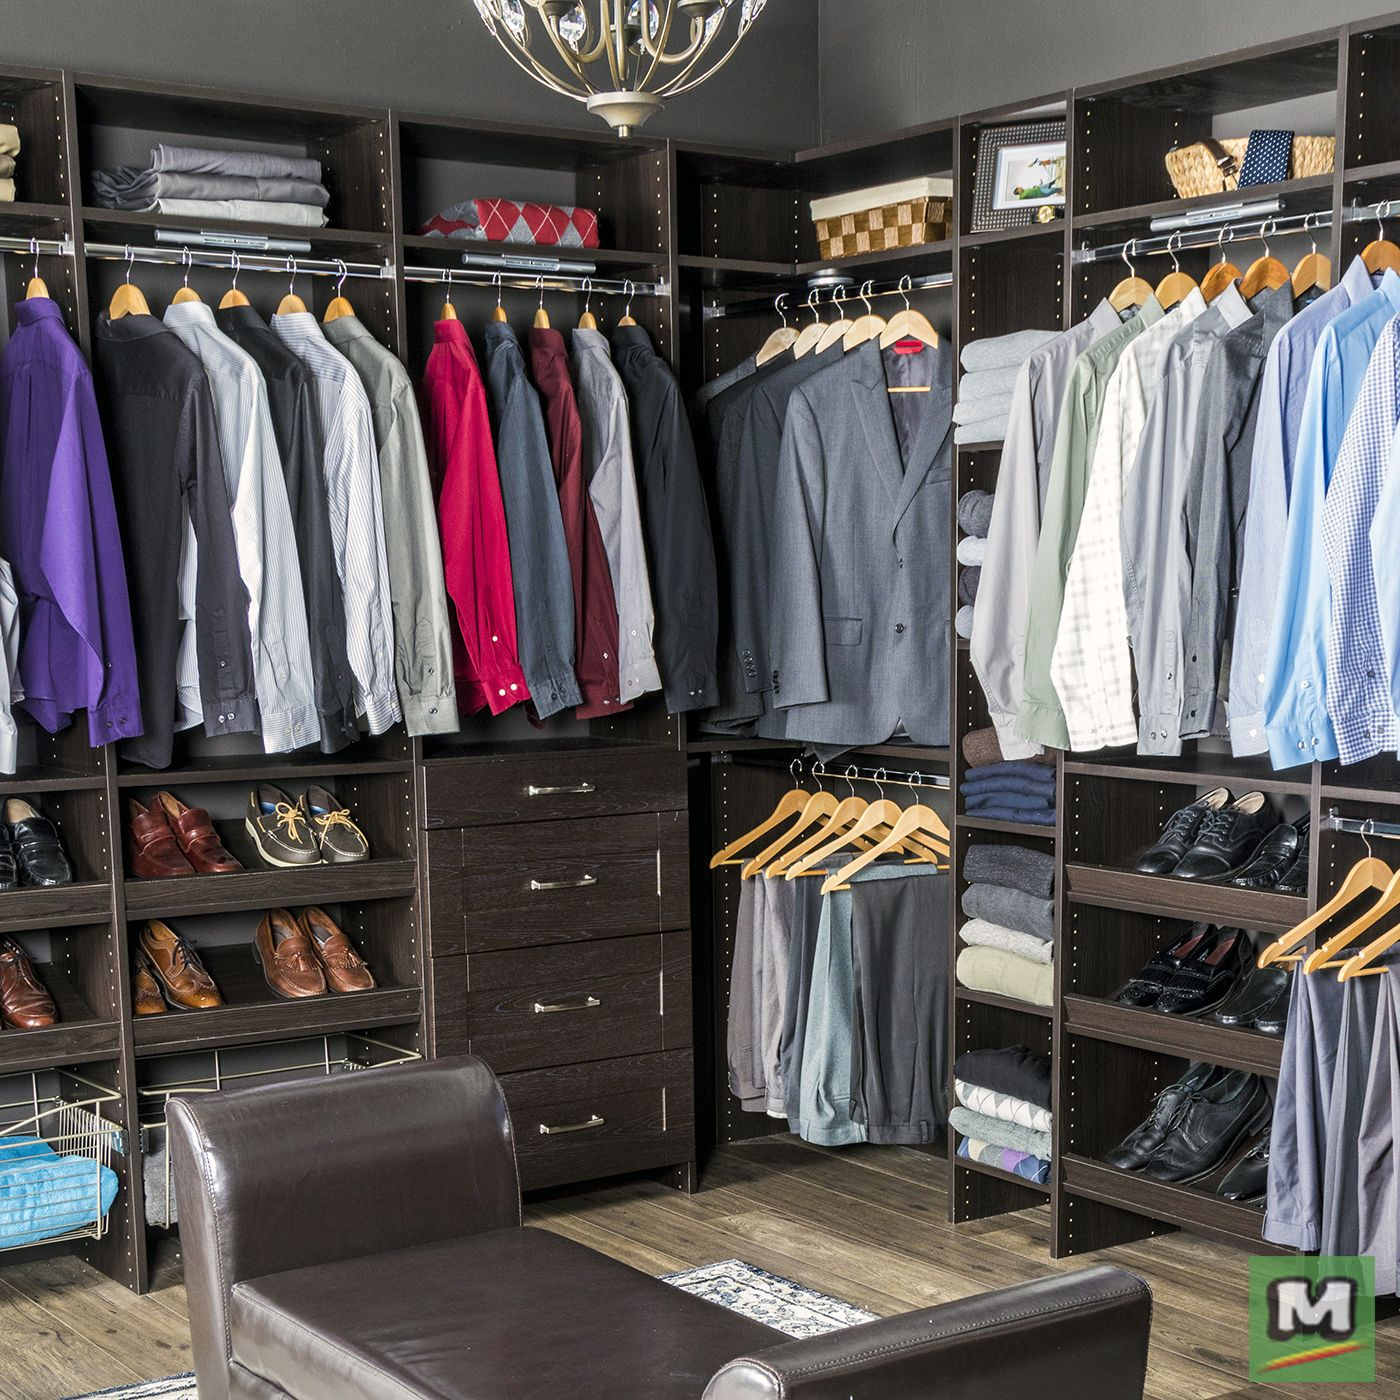 Design Your Ideal Storage Space With Dakota™ Closets From Menards®! From  Starter Packs